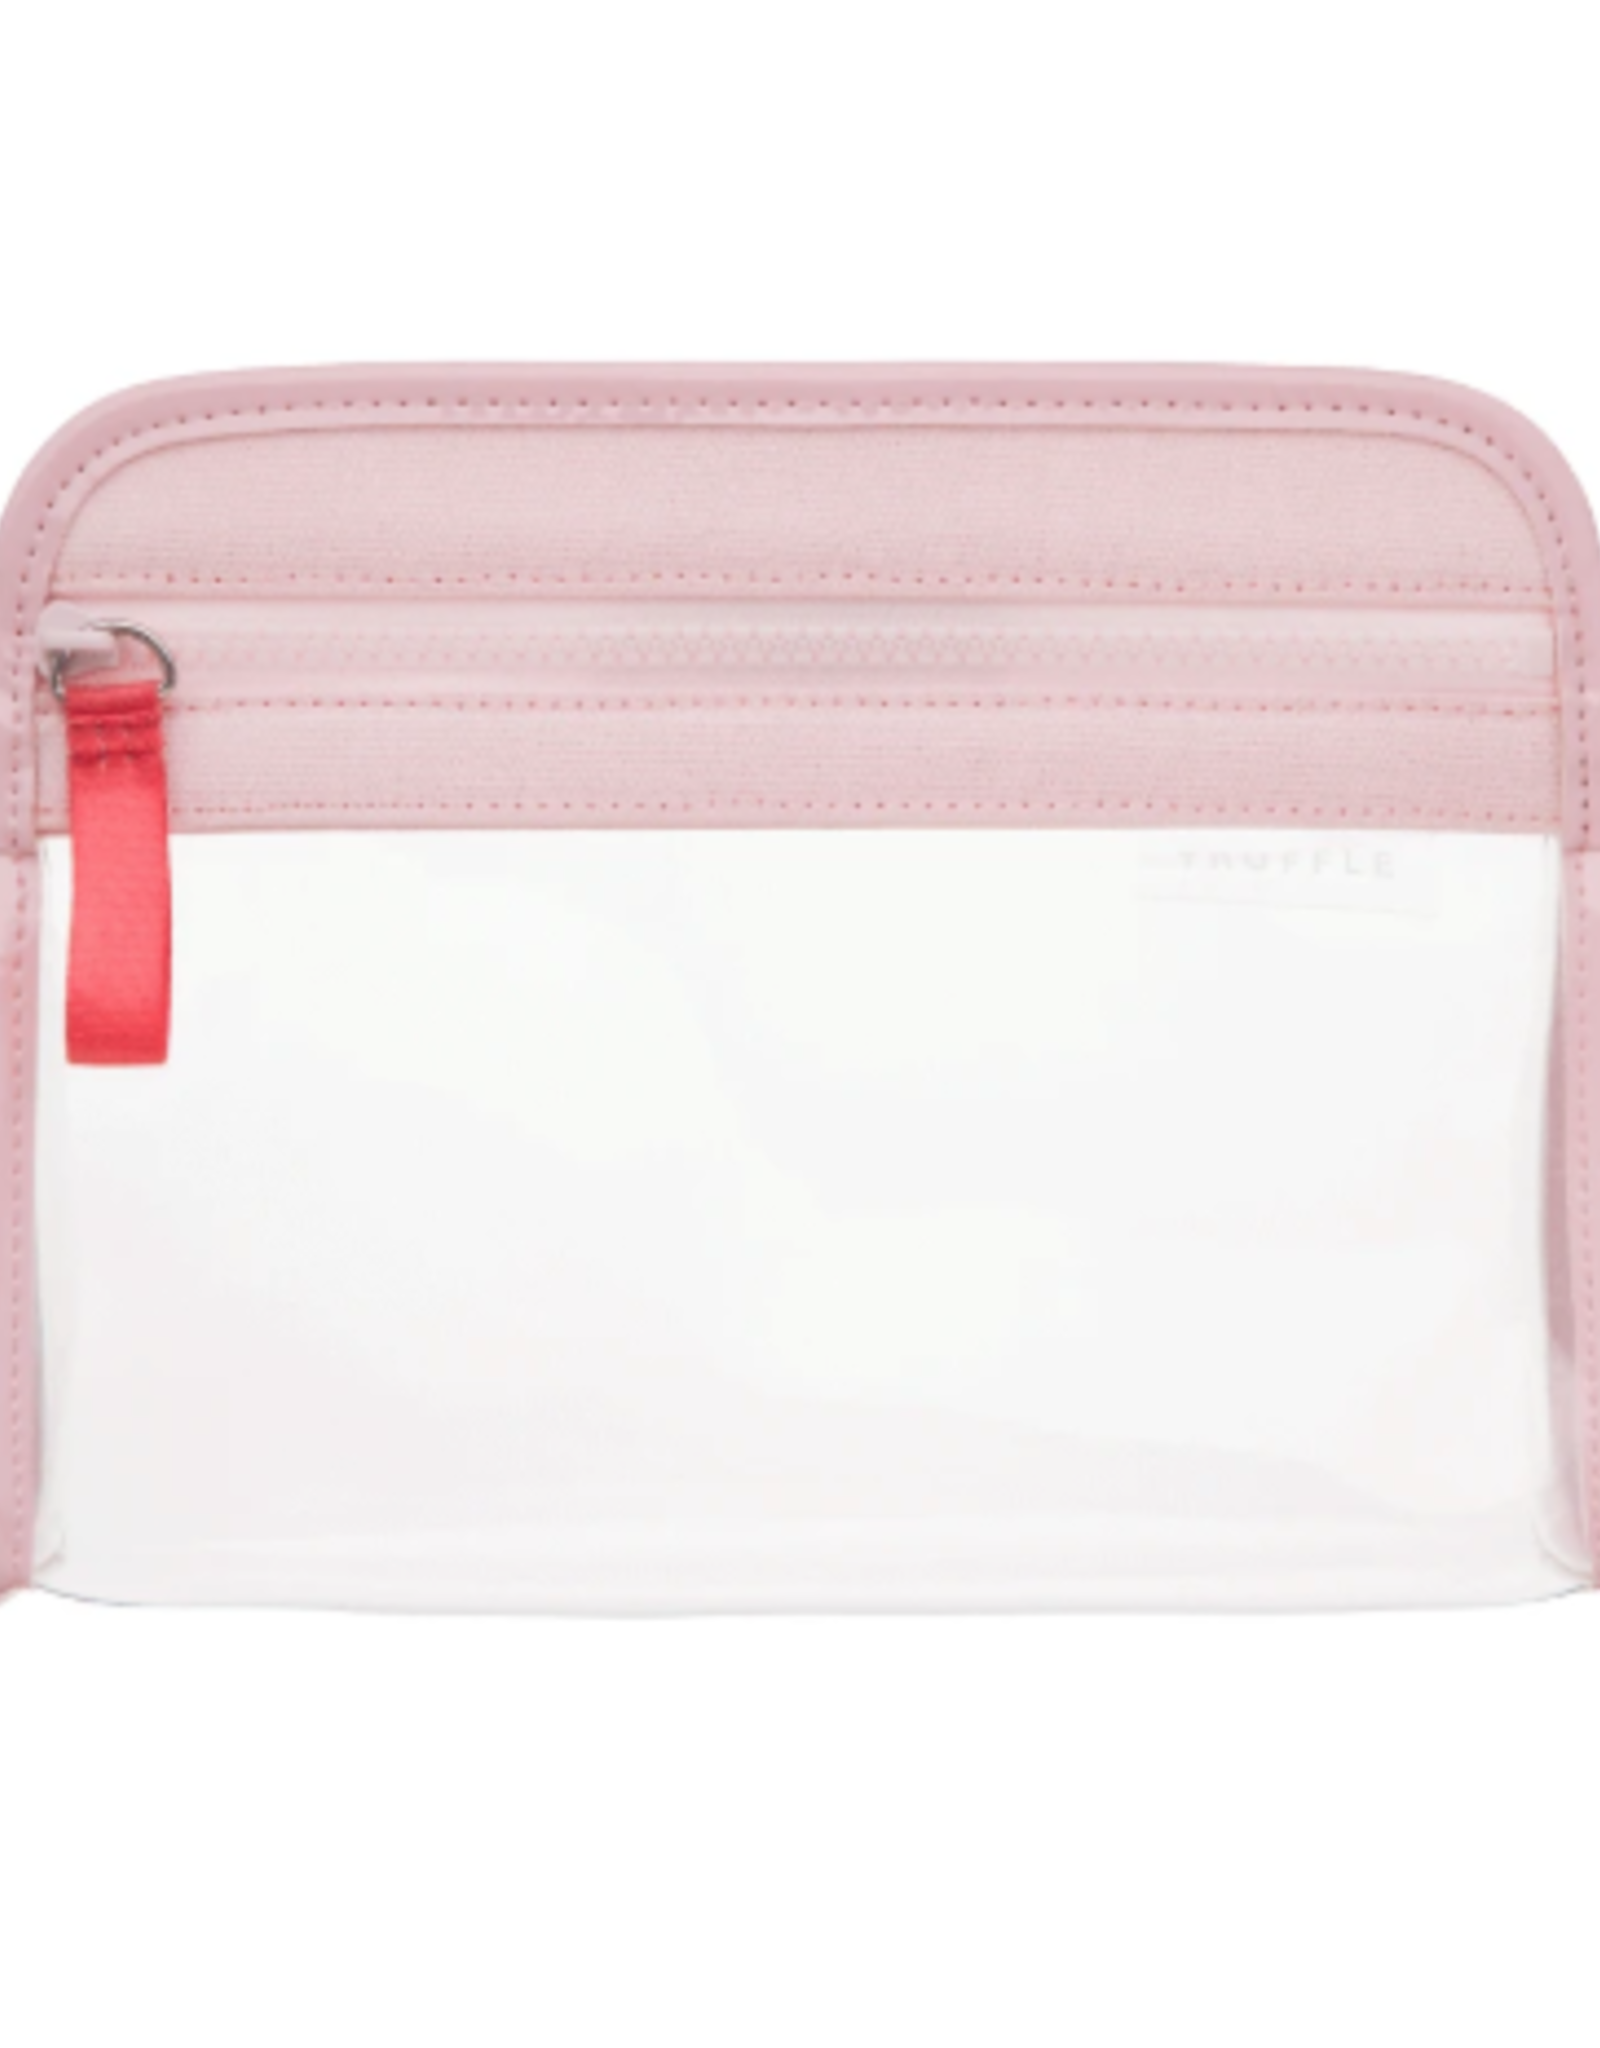 Clarity Pouch Small - Petal